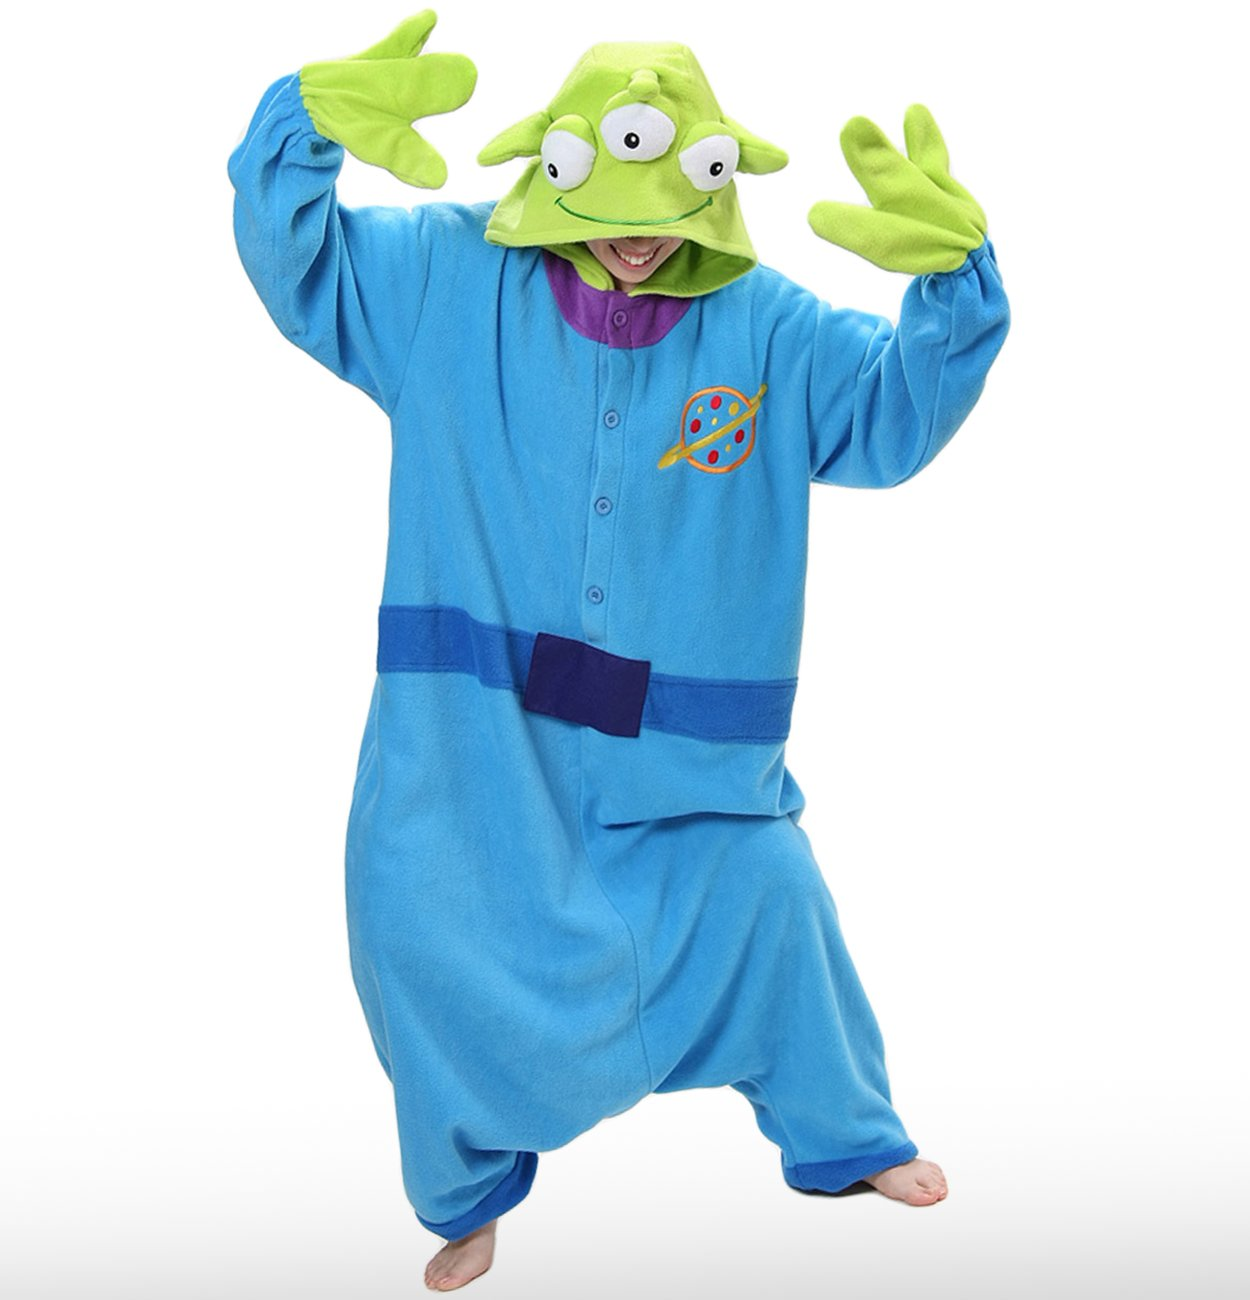 Toy Story Alien Adult Kigu Costume